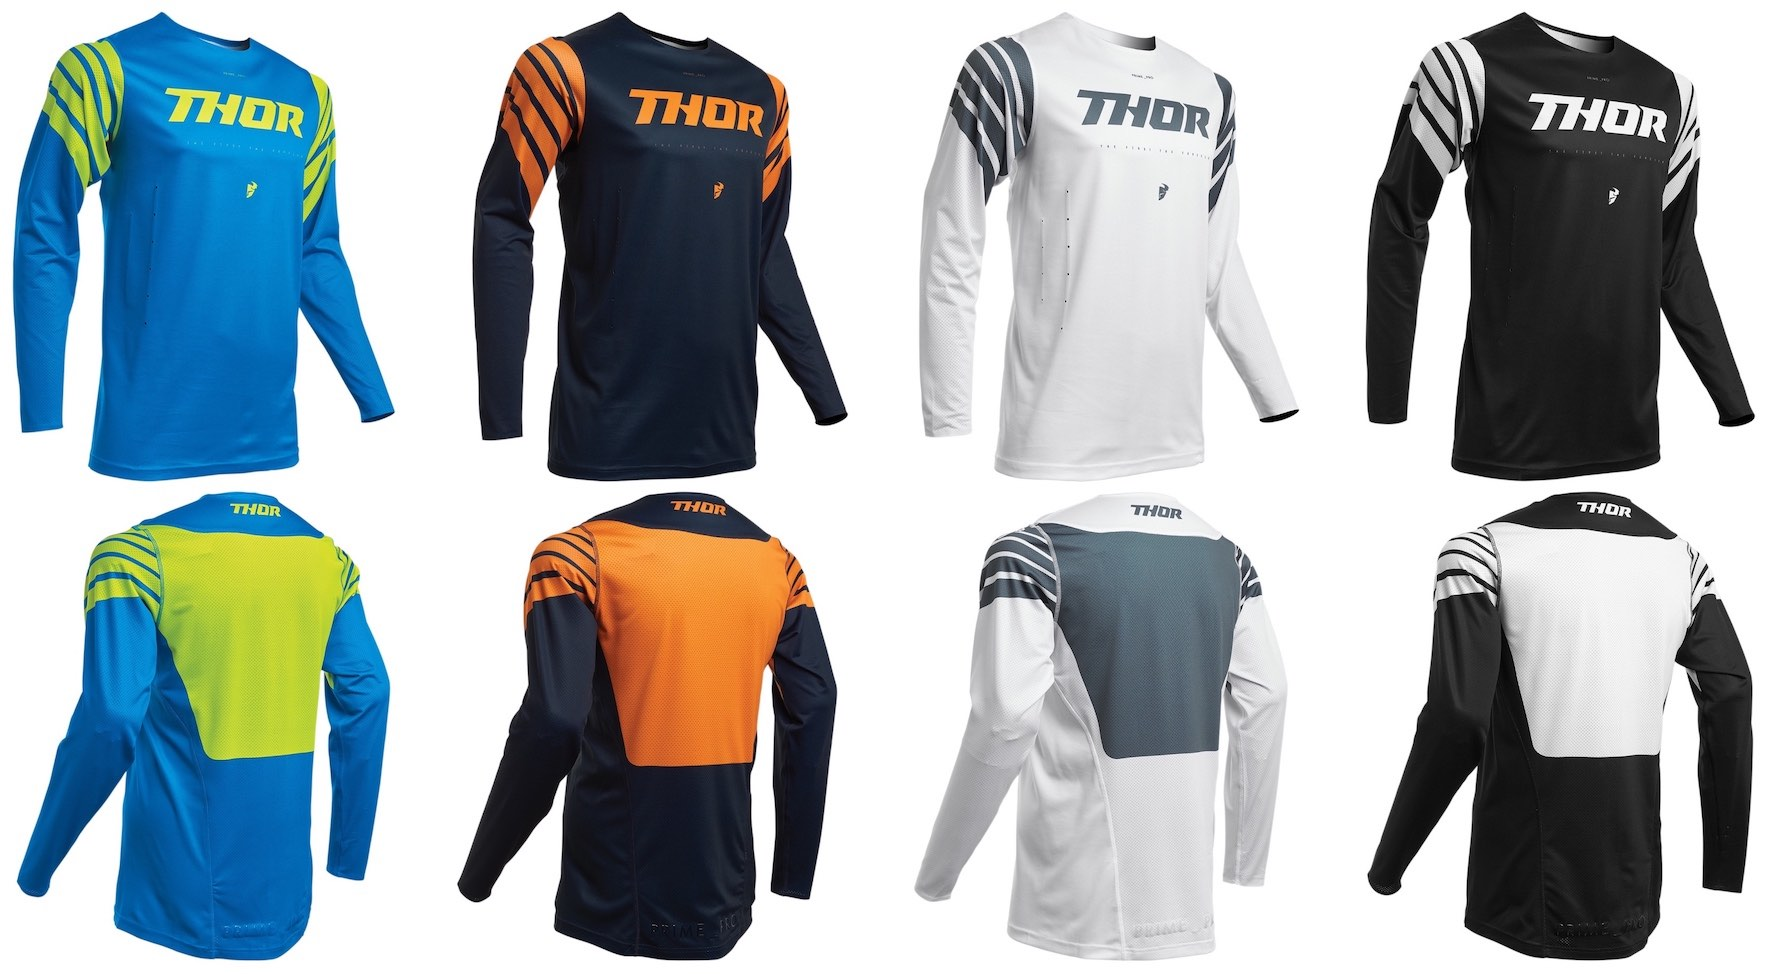 The 2020 Thor MX Prime Pro Jersey options